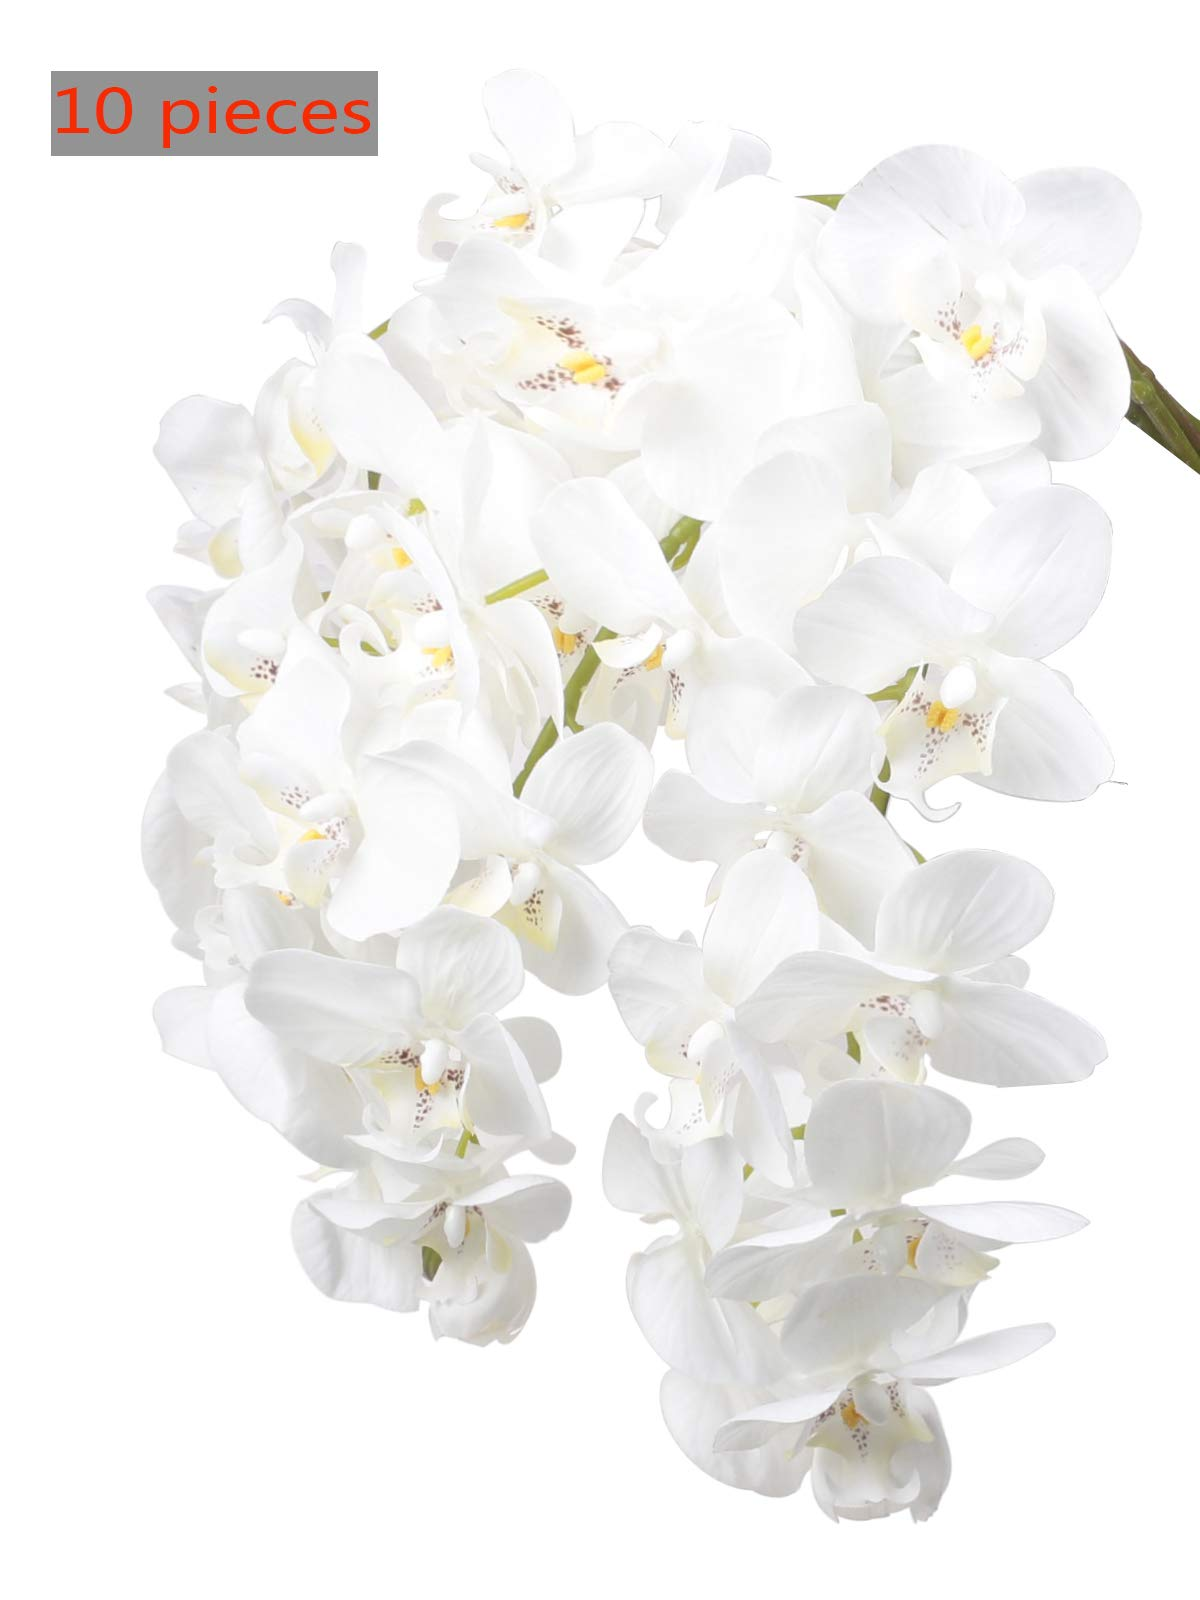 """Ivalue 28"""" Artificial Orchid Flower Stems Real Touch White Orchid Flower Plants Pack of 10, Box Packed, Perfect for Gift"""